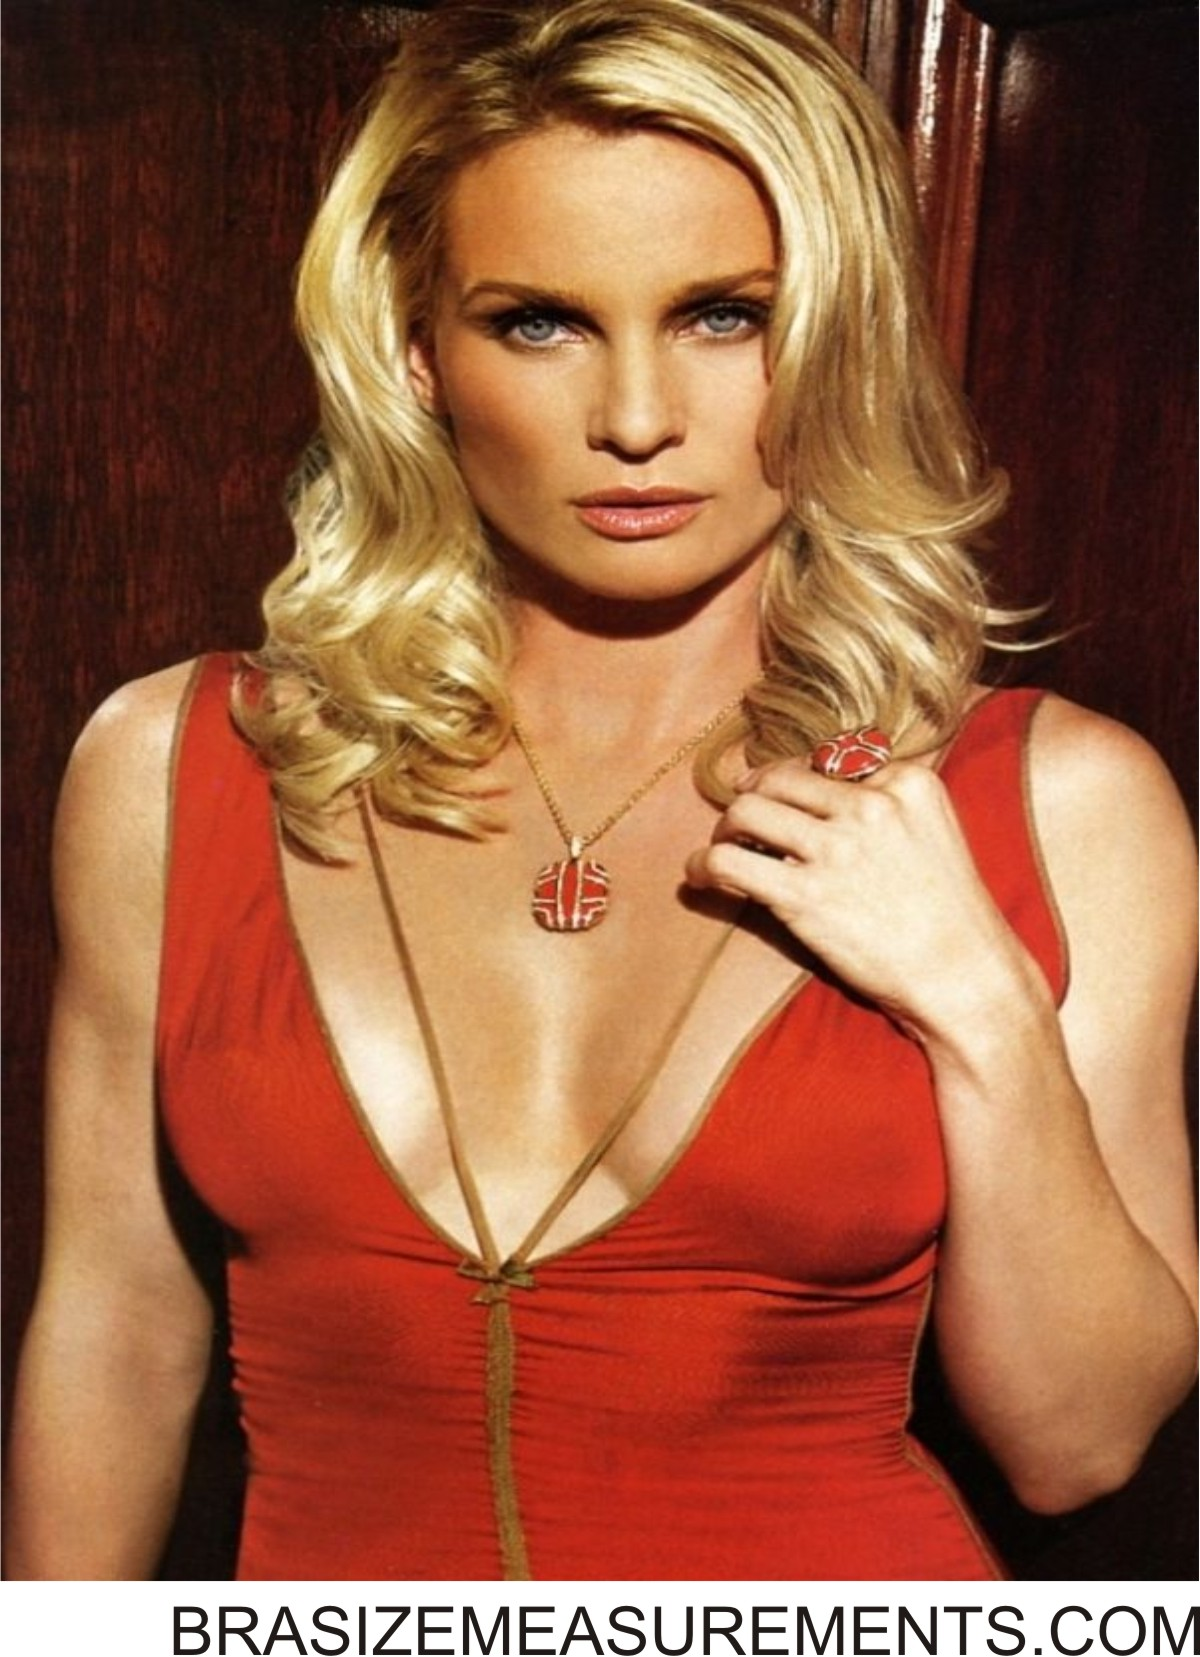 Nicolette Sheridan nudes (44 photo), fotos Bikini, YouTube, lingerie 2019